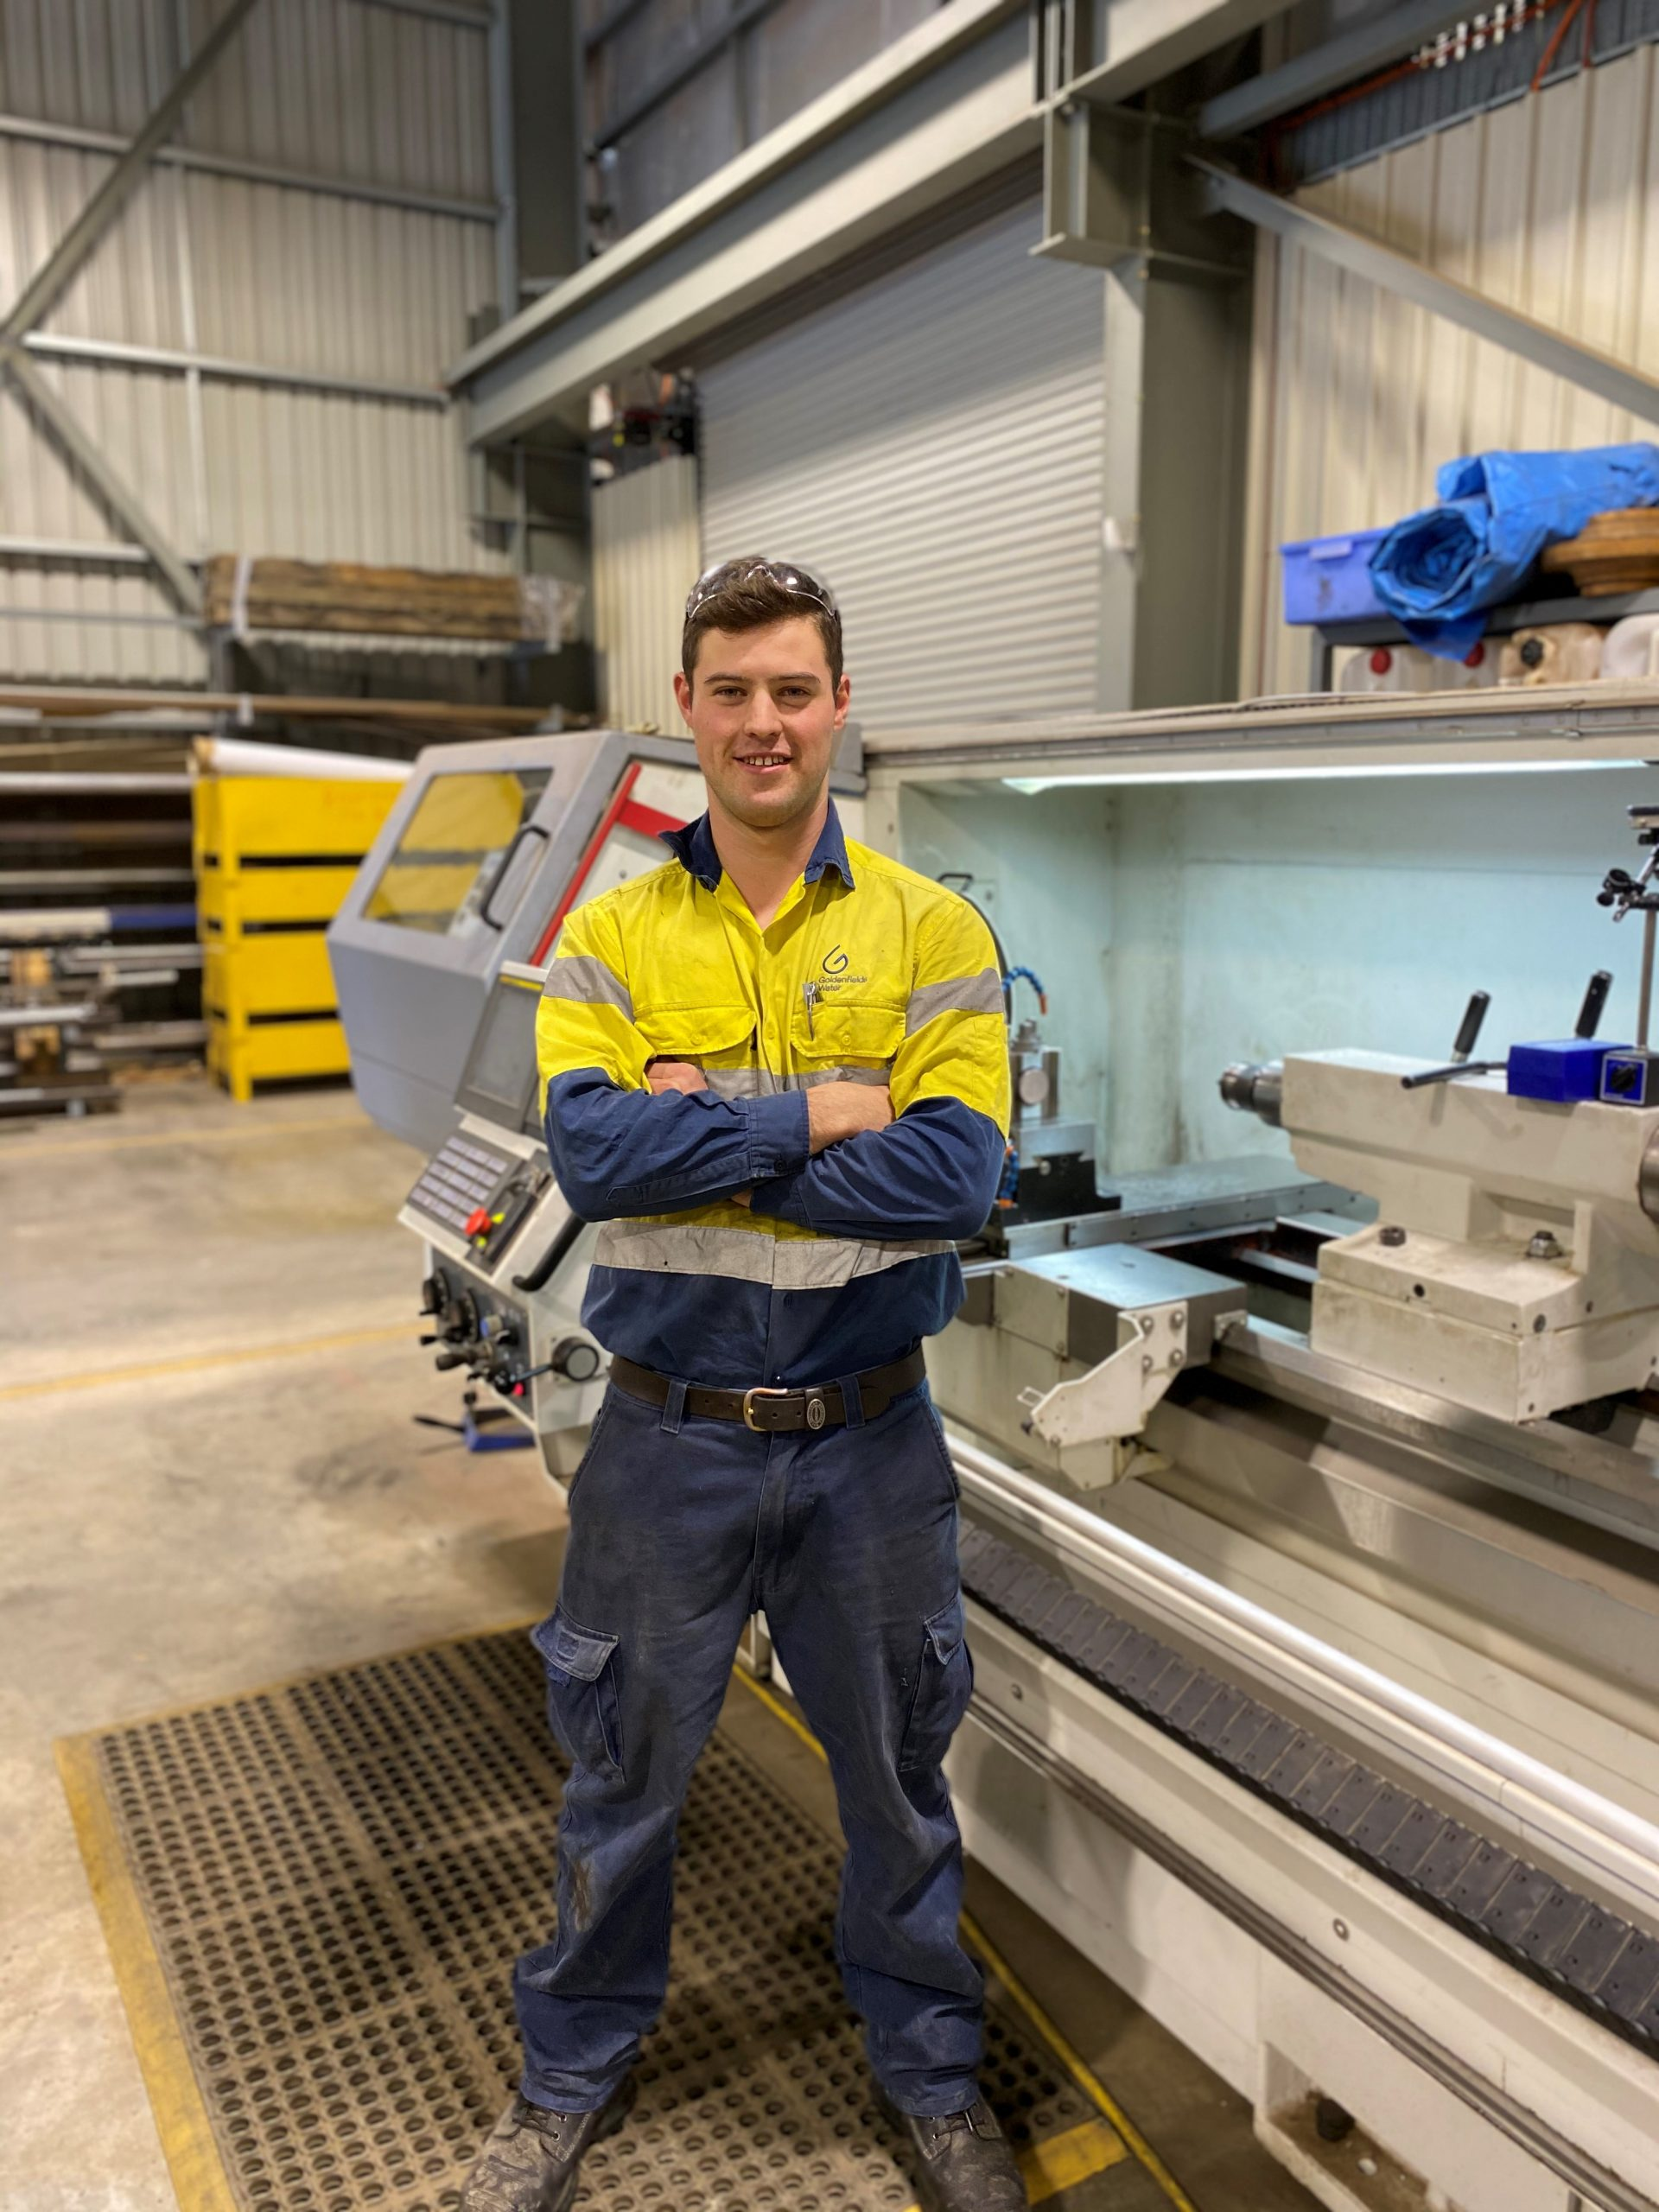 Blake Hingerty stands in a workshop, next to machinery. He is wearing high vis work clothes and stares straight at the camera with his arms crossed, smiling and with safety goggles on his head.